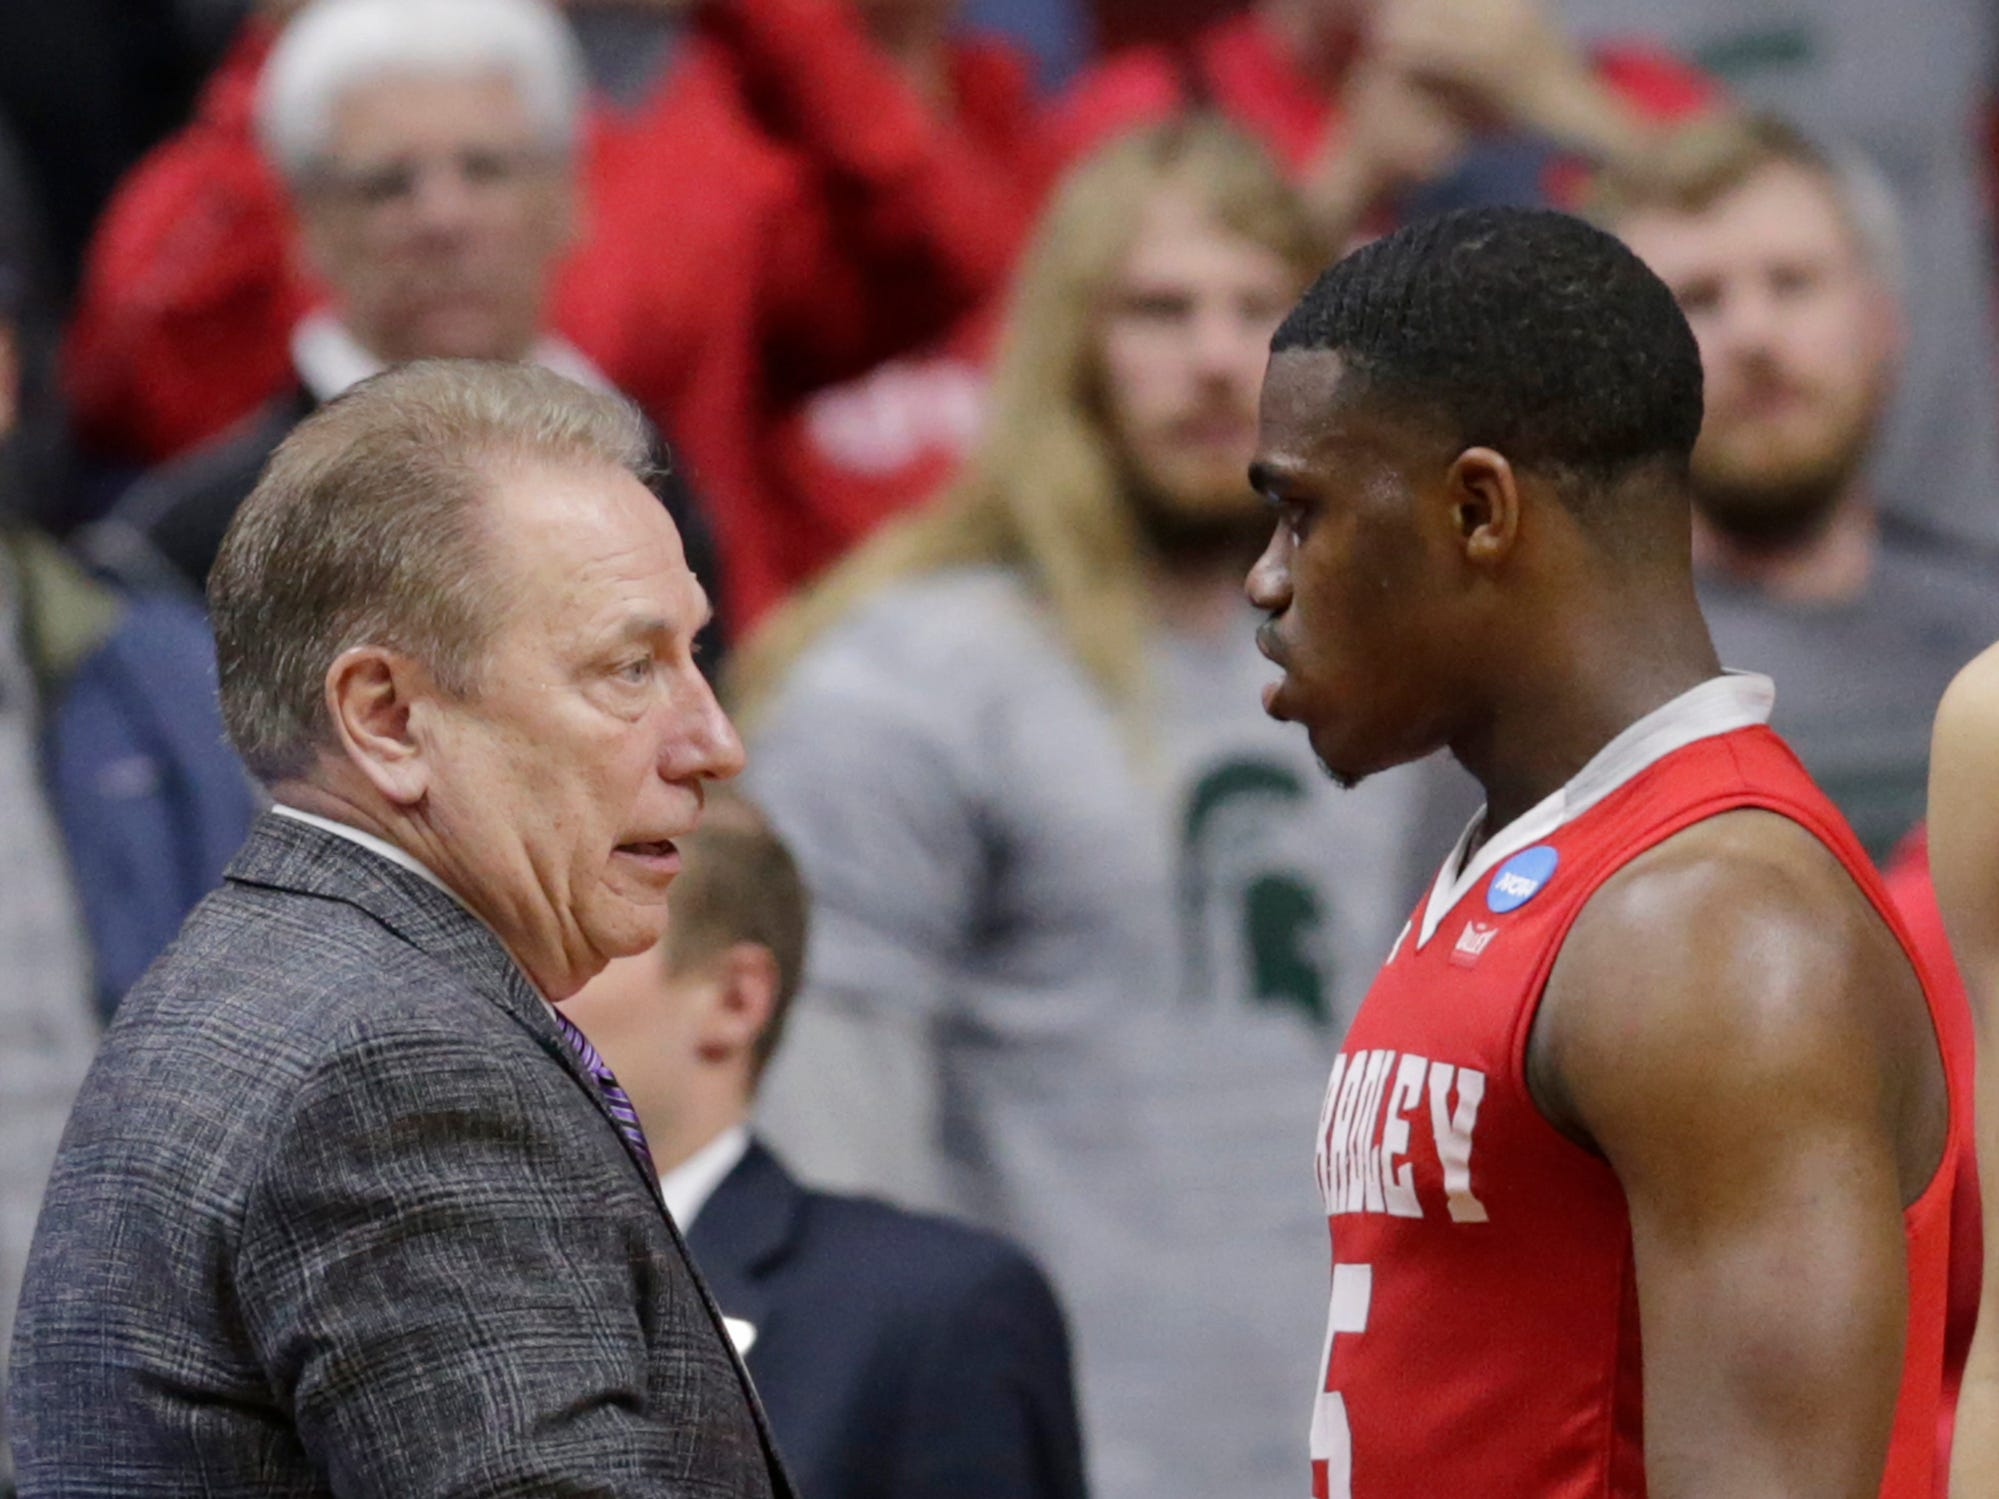 Michigan State coach Tom Izzo shakes the hand of Bradley's Darrell Brown (5) after a first round men's college basketball game in the NCAA Tournament, in Des Moines, Iowa, Thursday, March 21, 2019.